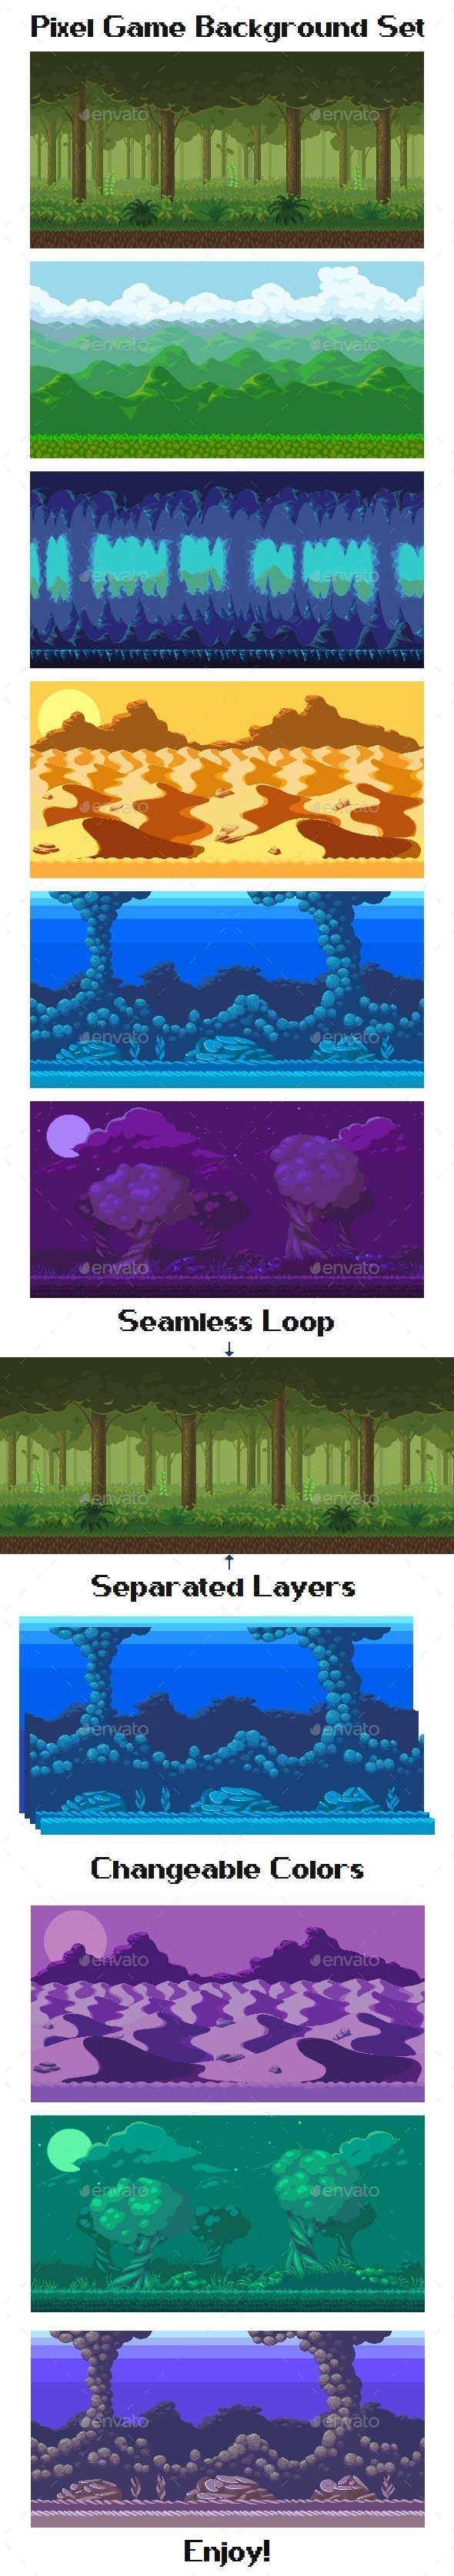 Pixel Game Background Set (Backgrounds)